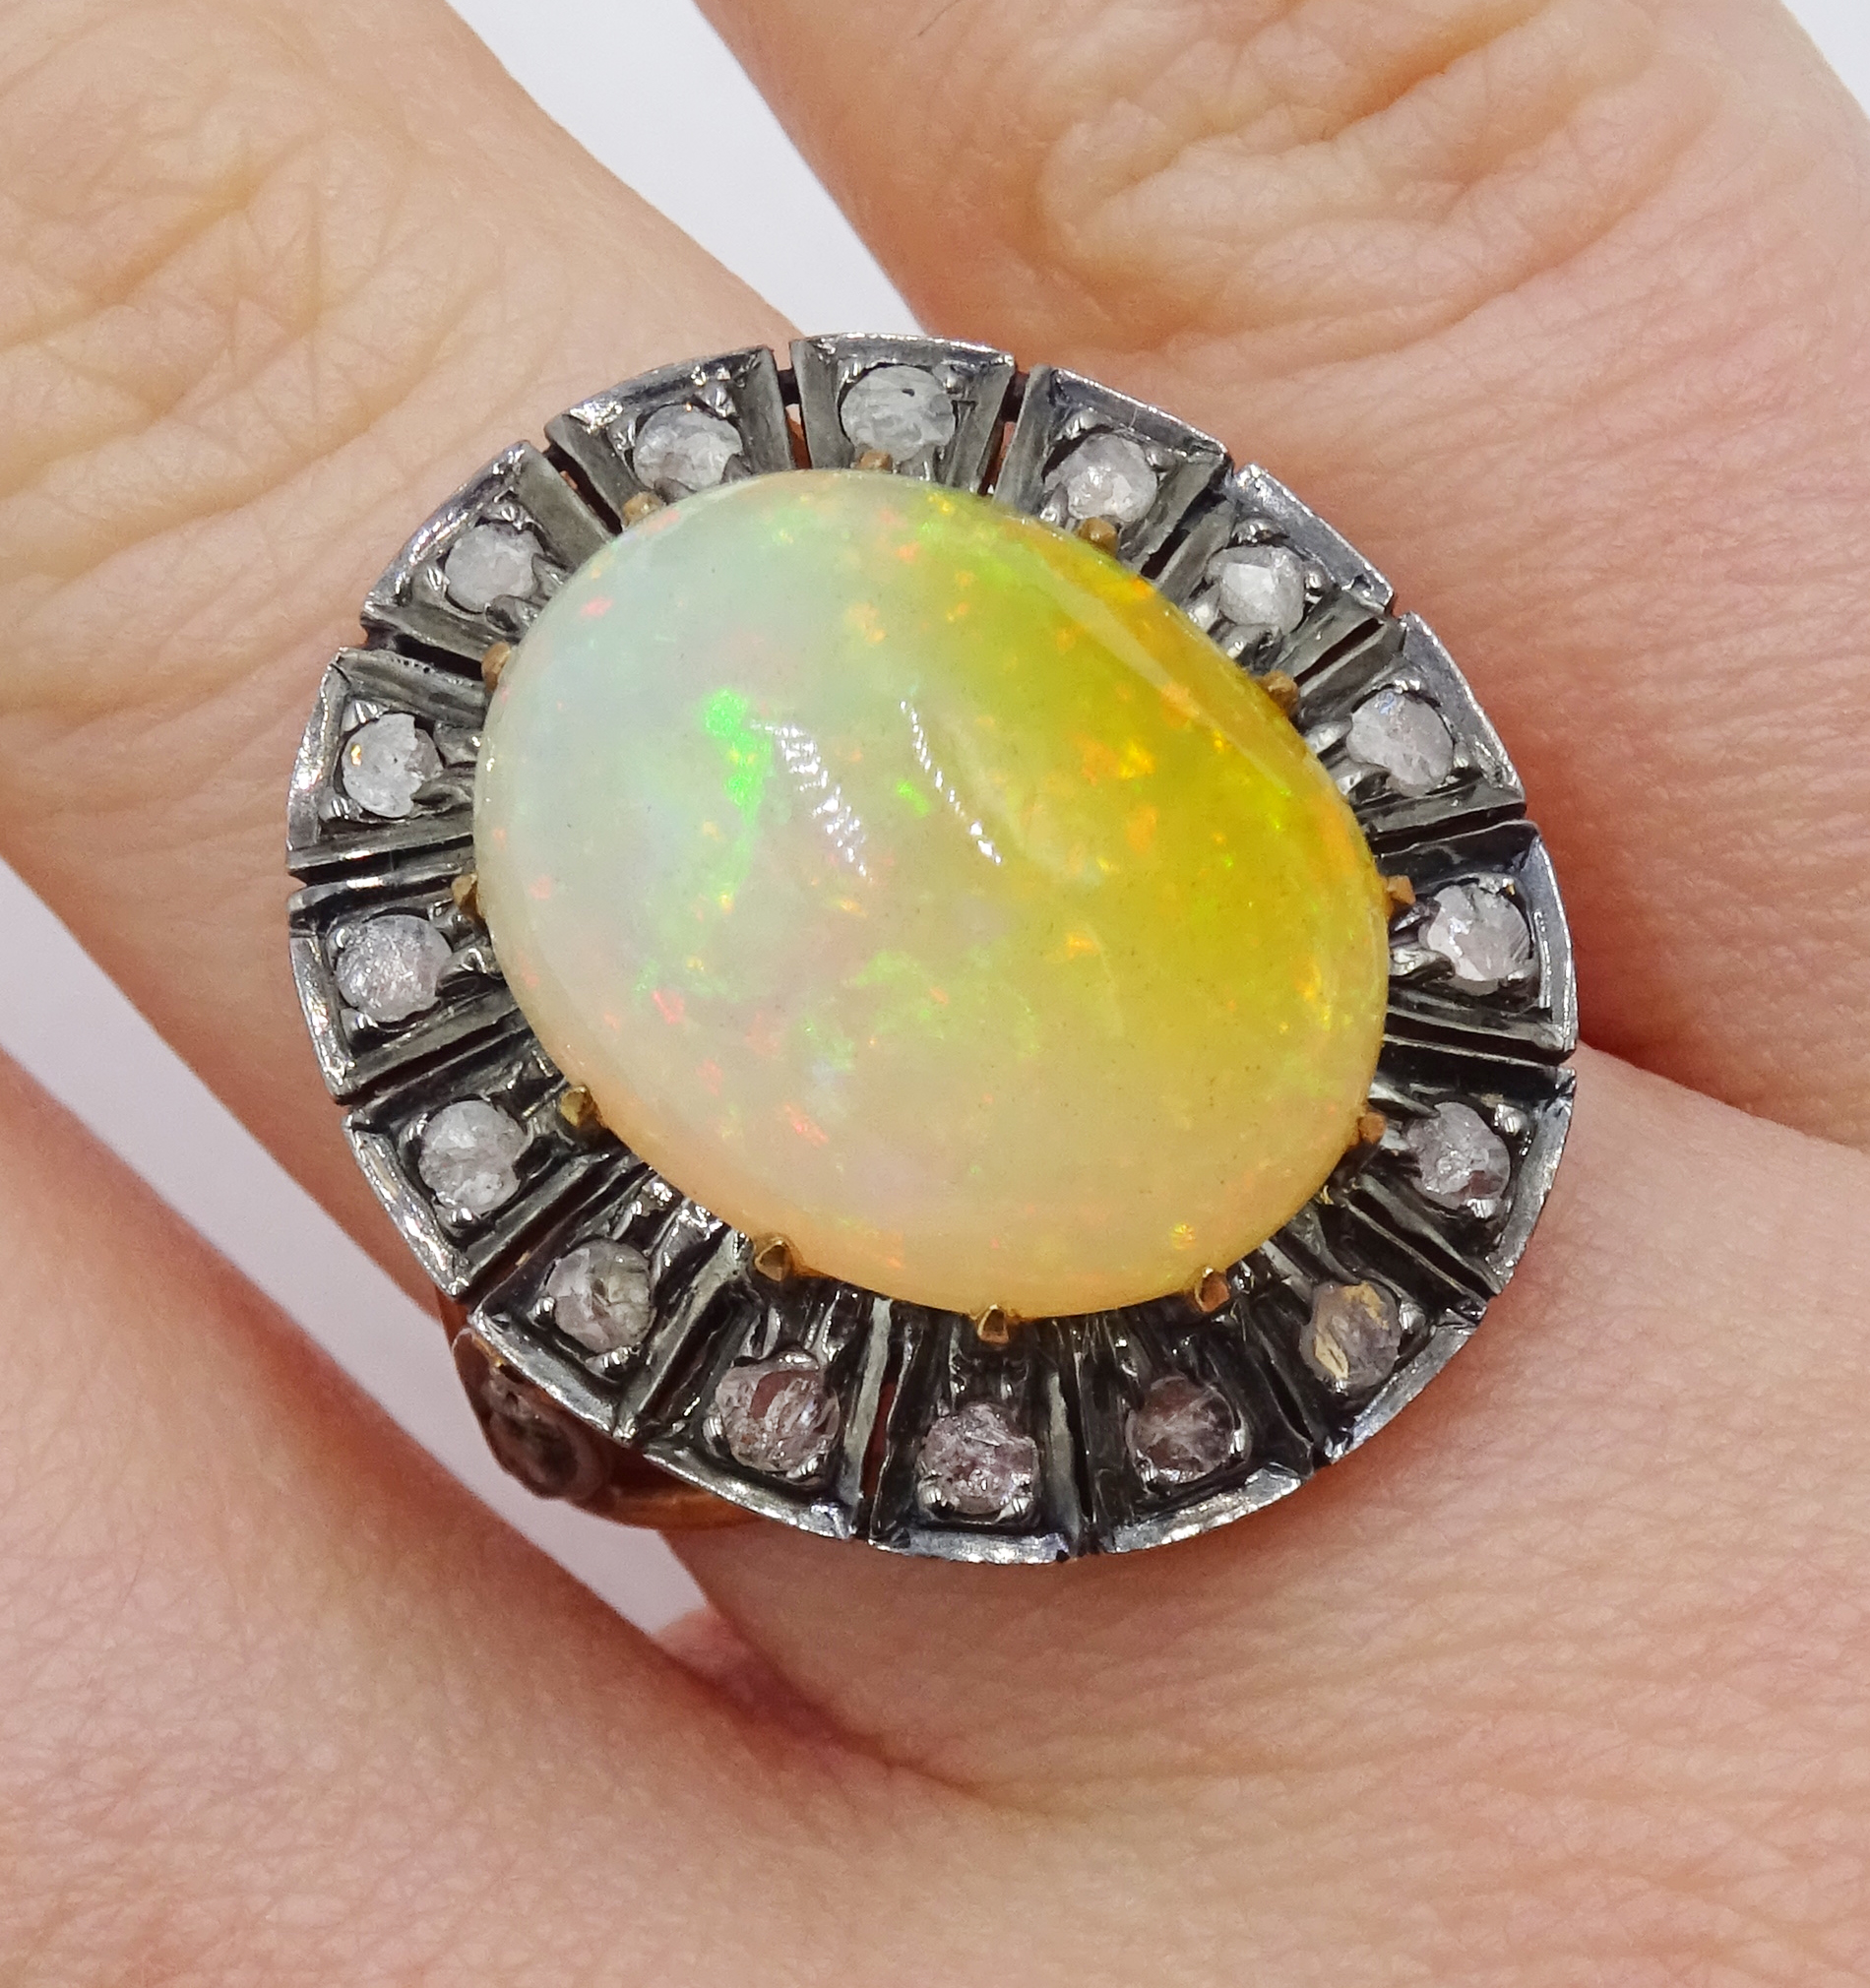 14ct gold and silver cabochon Ethiopian opal and rose cit diamond ring - Image 2 of 7